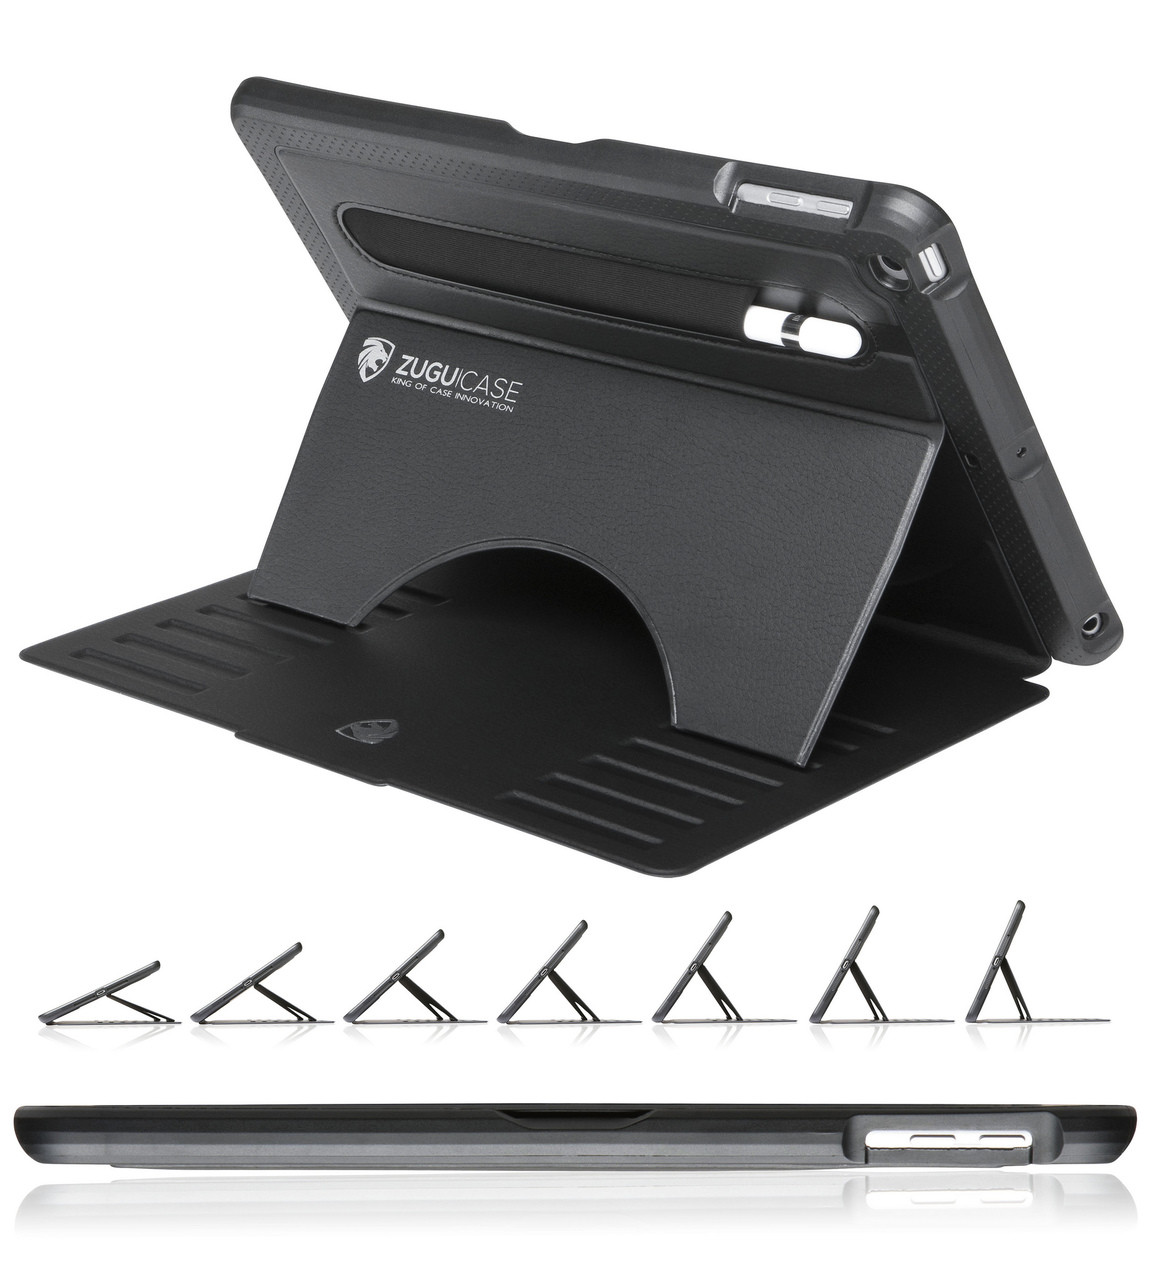 online retailer 27b2a 4456b iPad 9.7 (5th/6th Gen) & Air 1 Muse Case